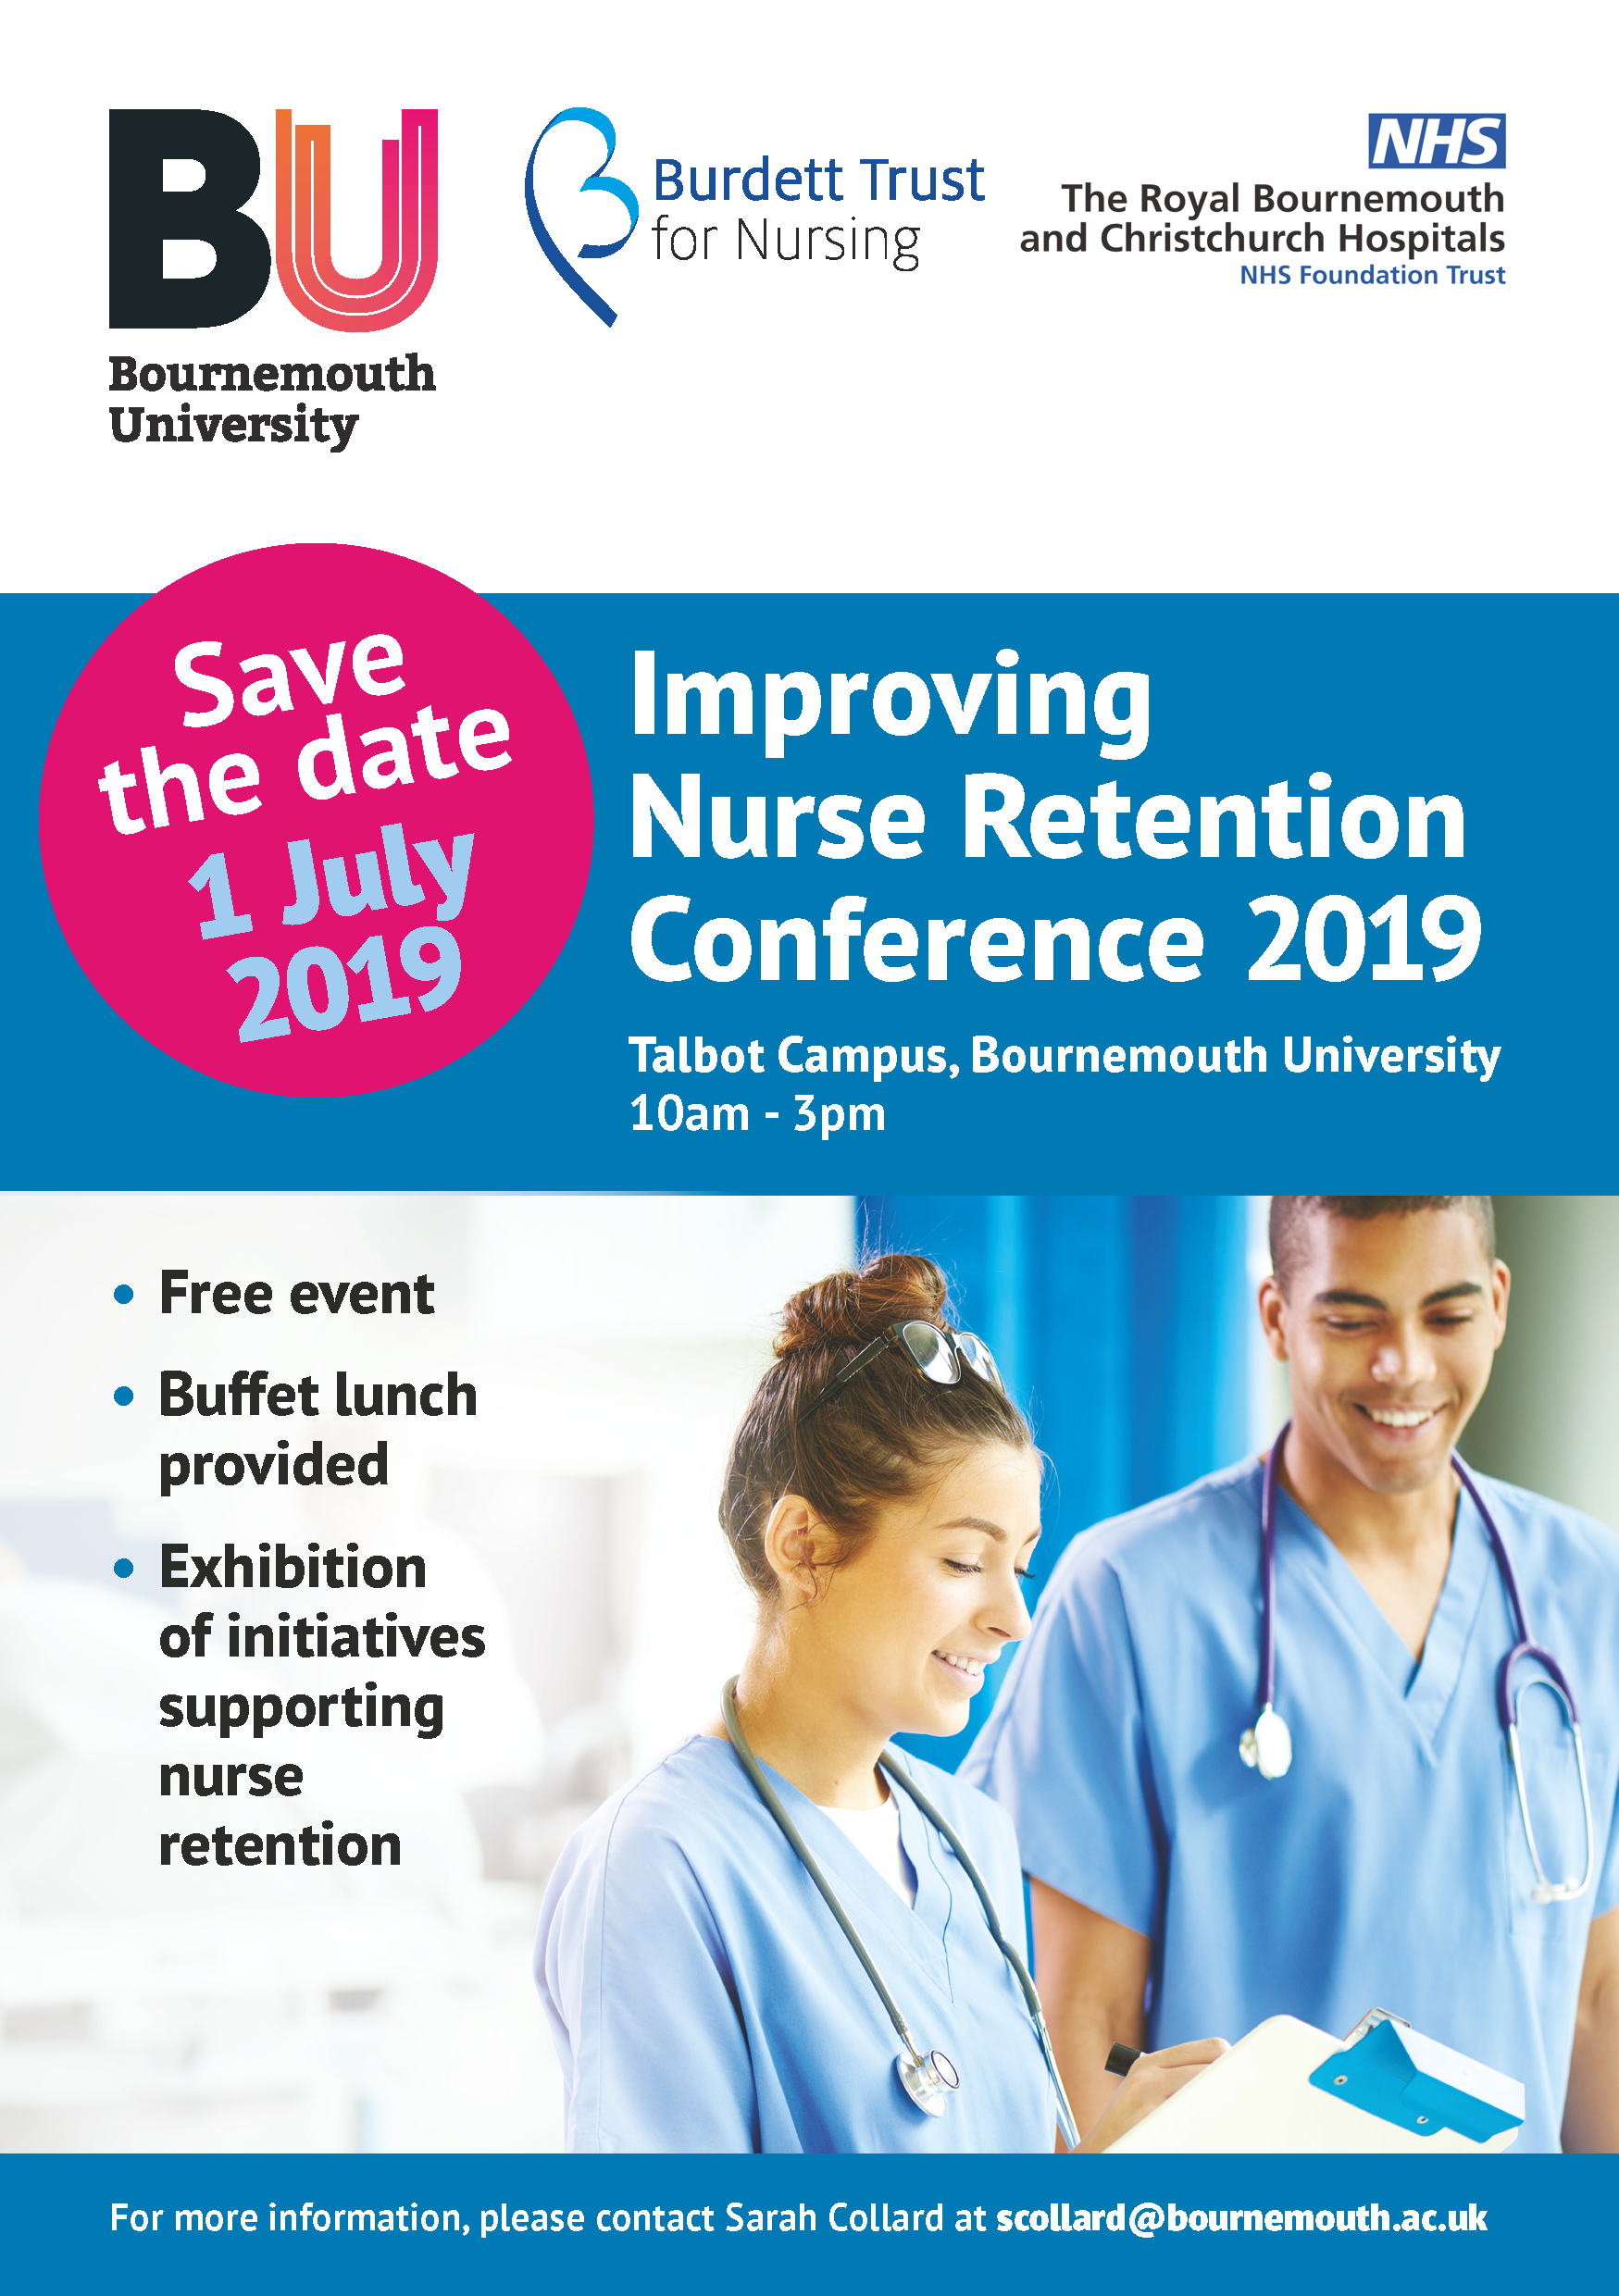 The Improving Nurse Retention Conference 2019 | Bournemouth